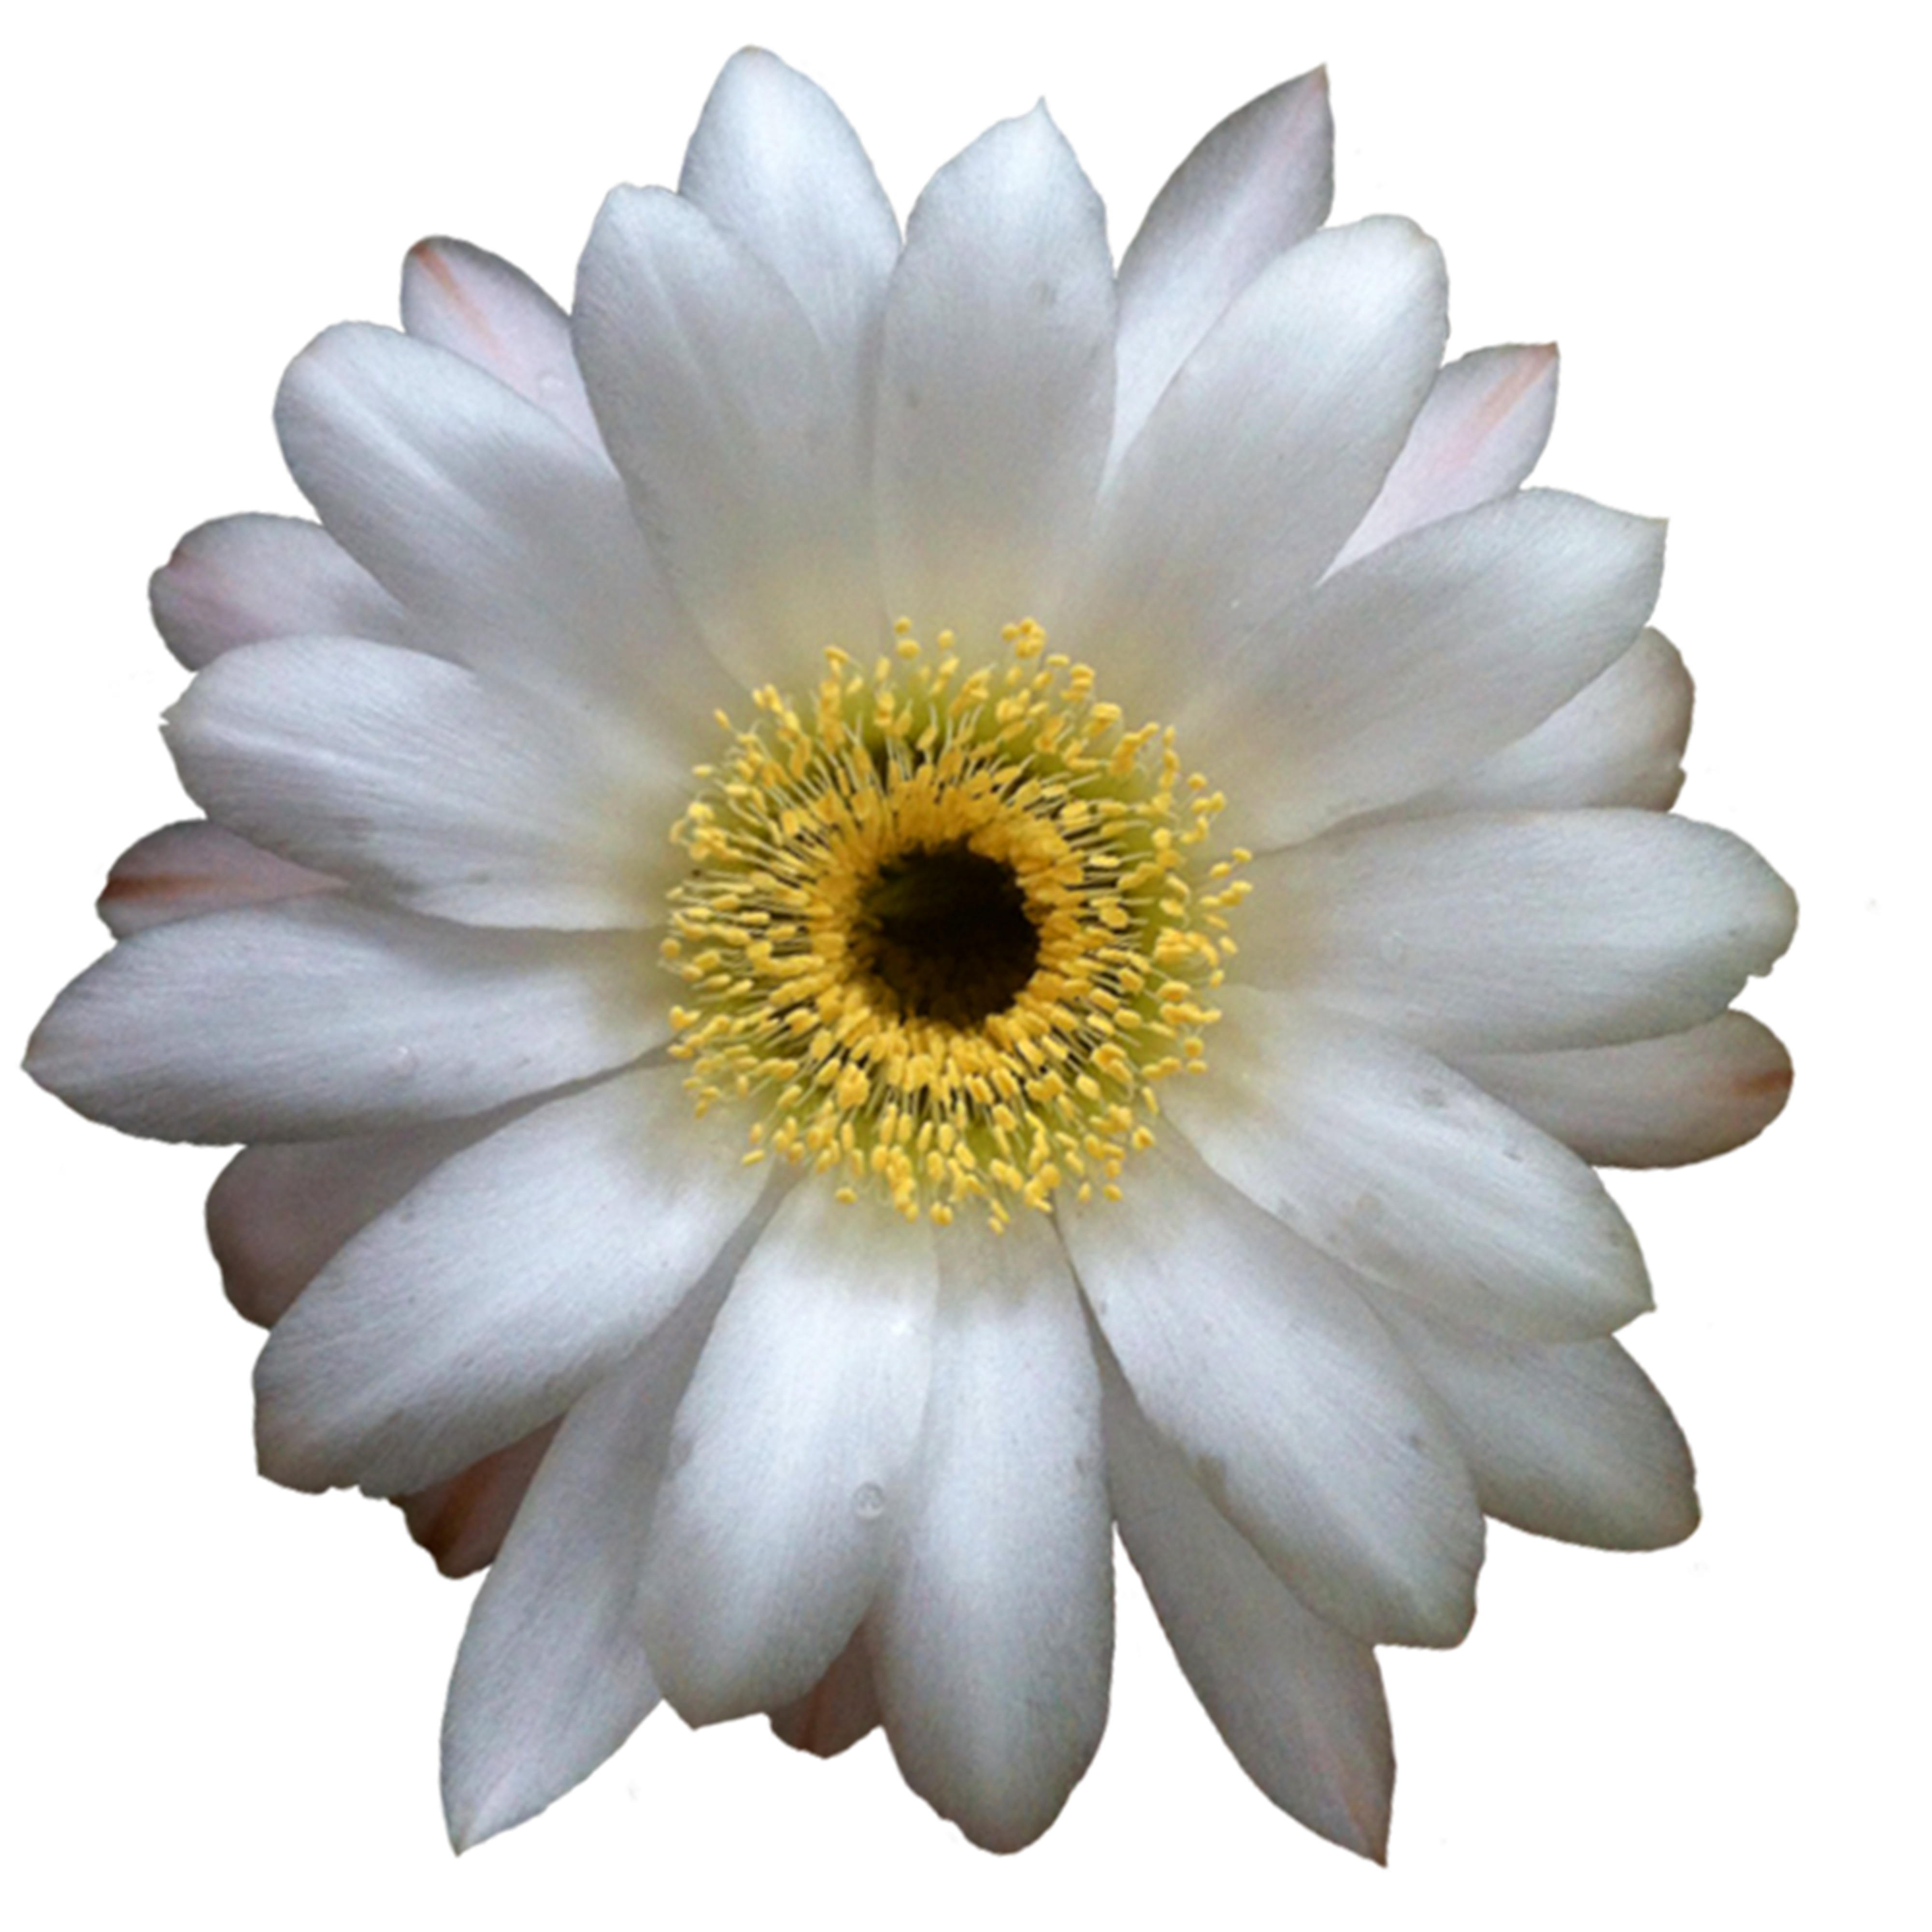 Cactus flower png. File extracted wikimedia commons